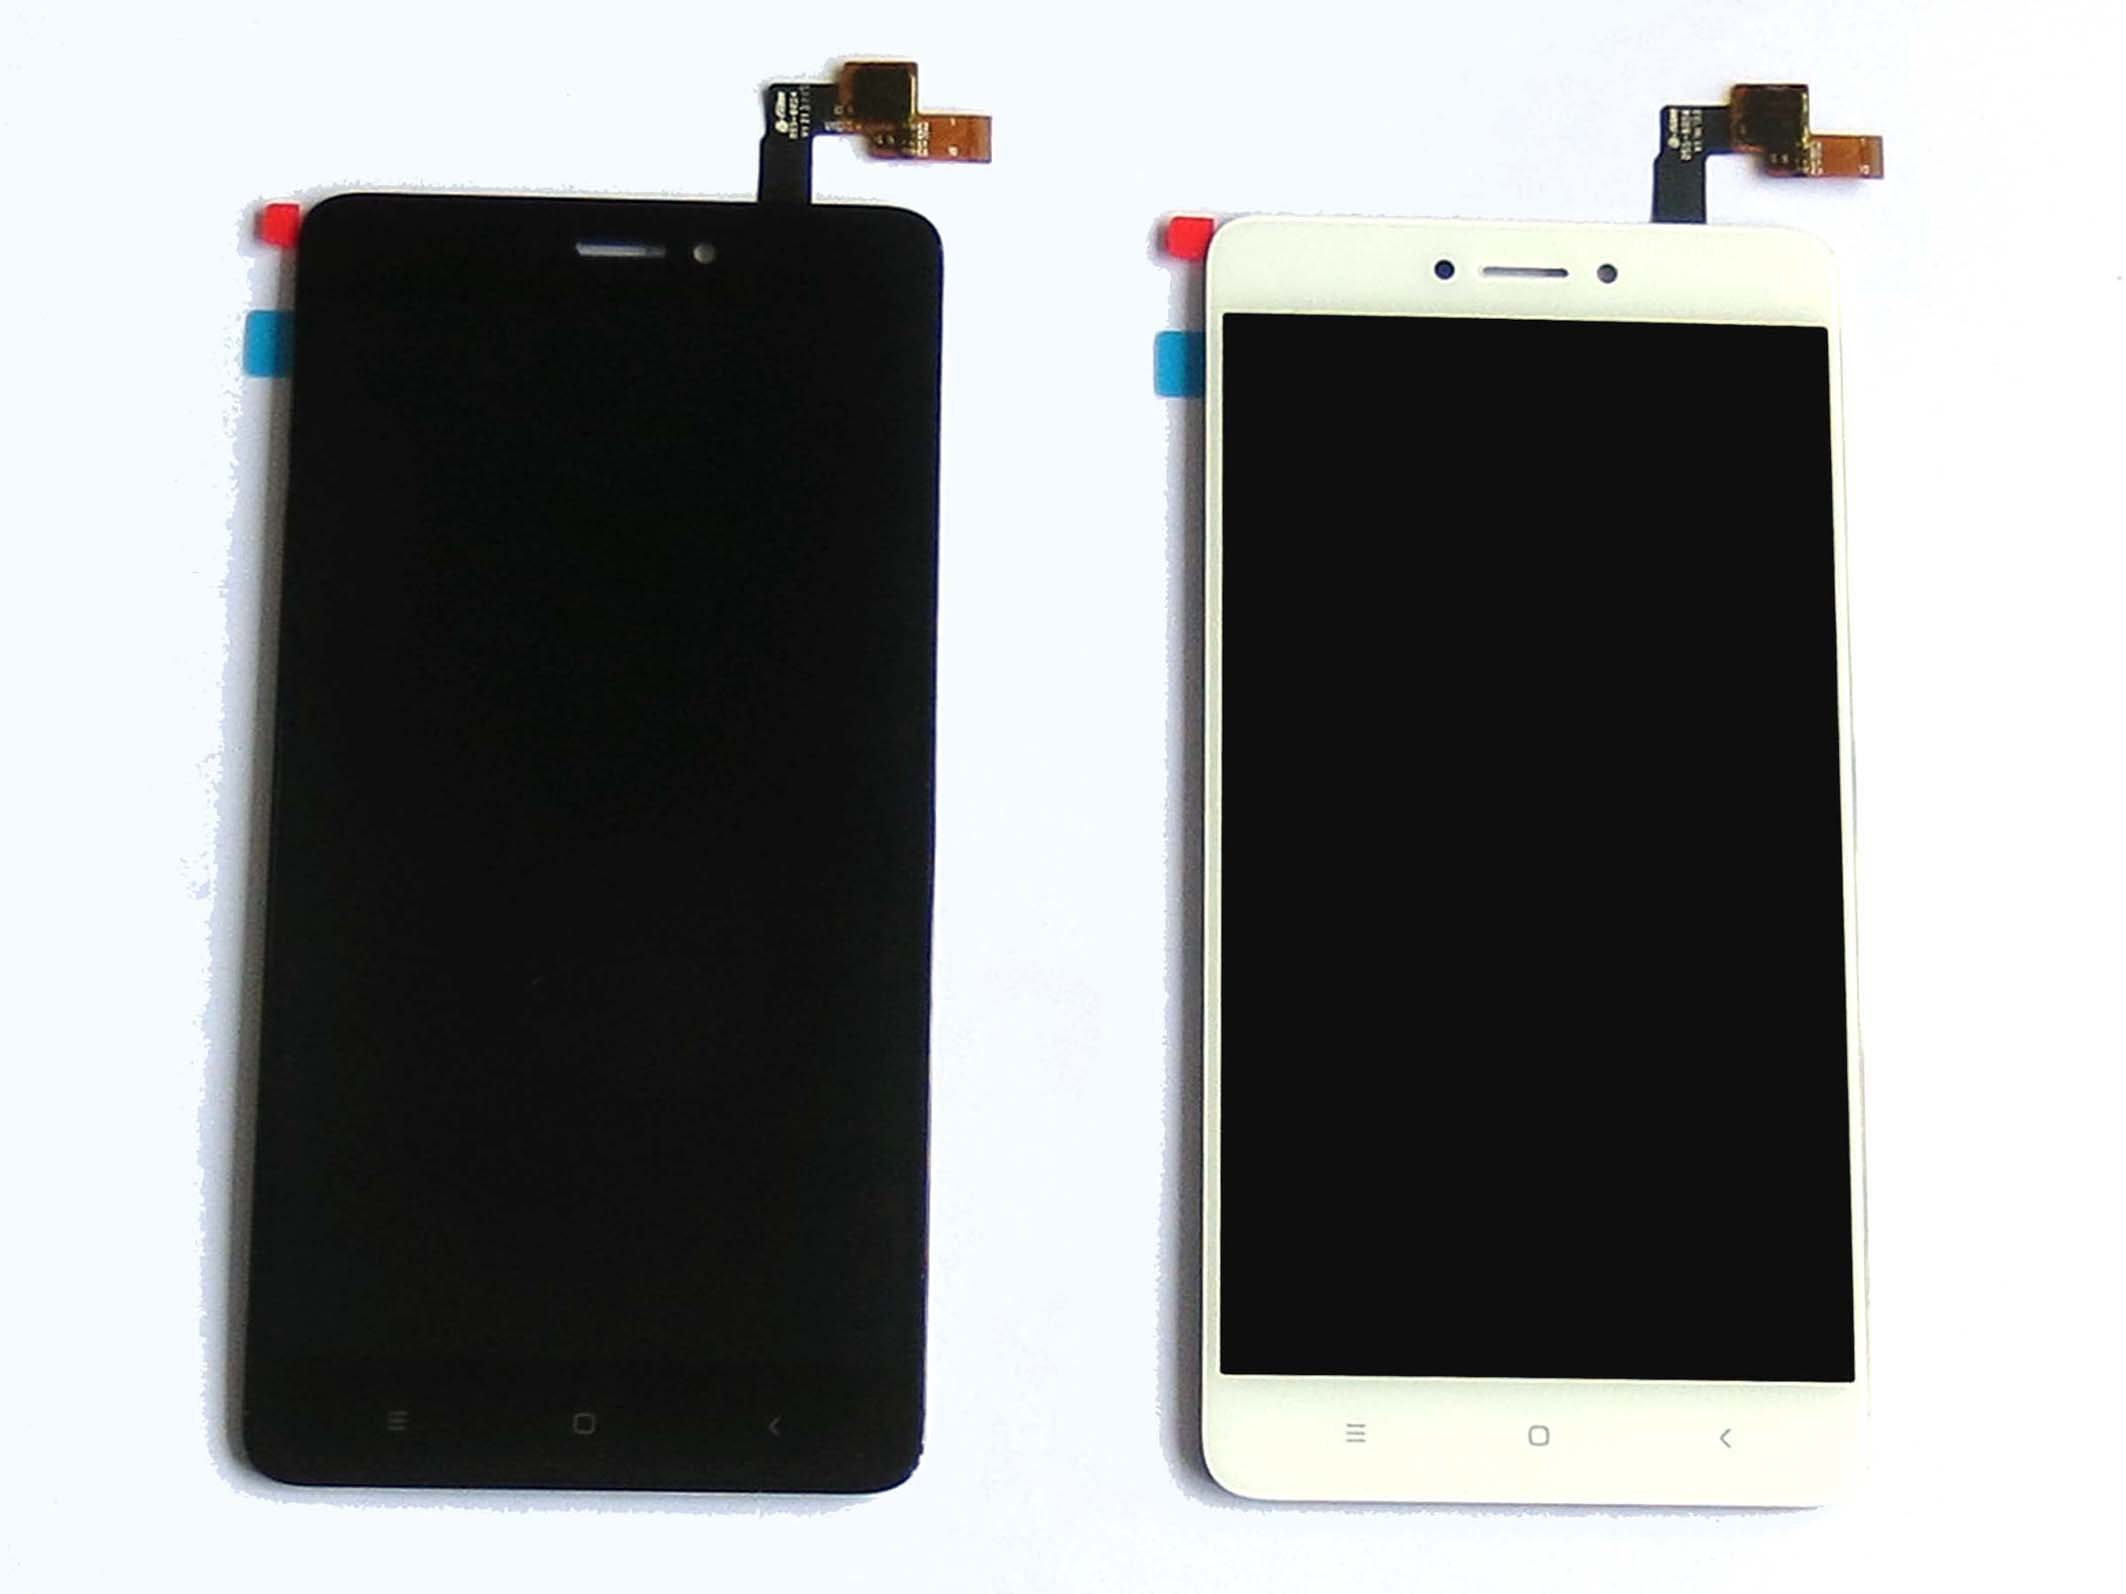 Original LCD Touch Screen Digitizer Assembly for Snapdragon version Redmi note 4X – Black & White